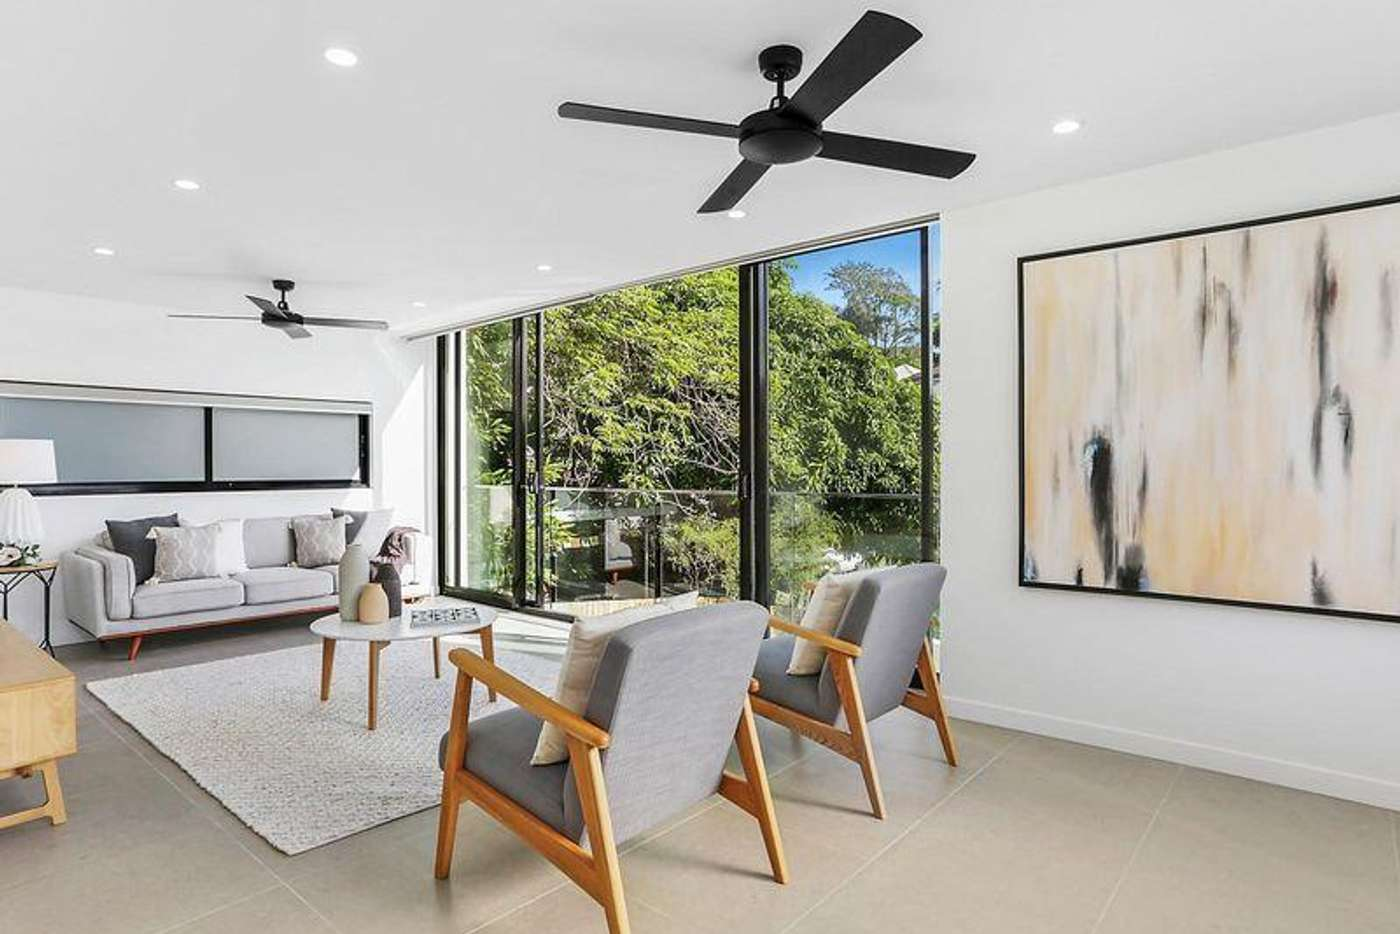 Sixth view of Homely house listing, 25 Merinda Street, Greenslopes QLD 4120